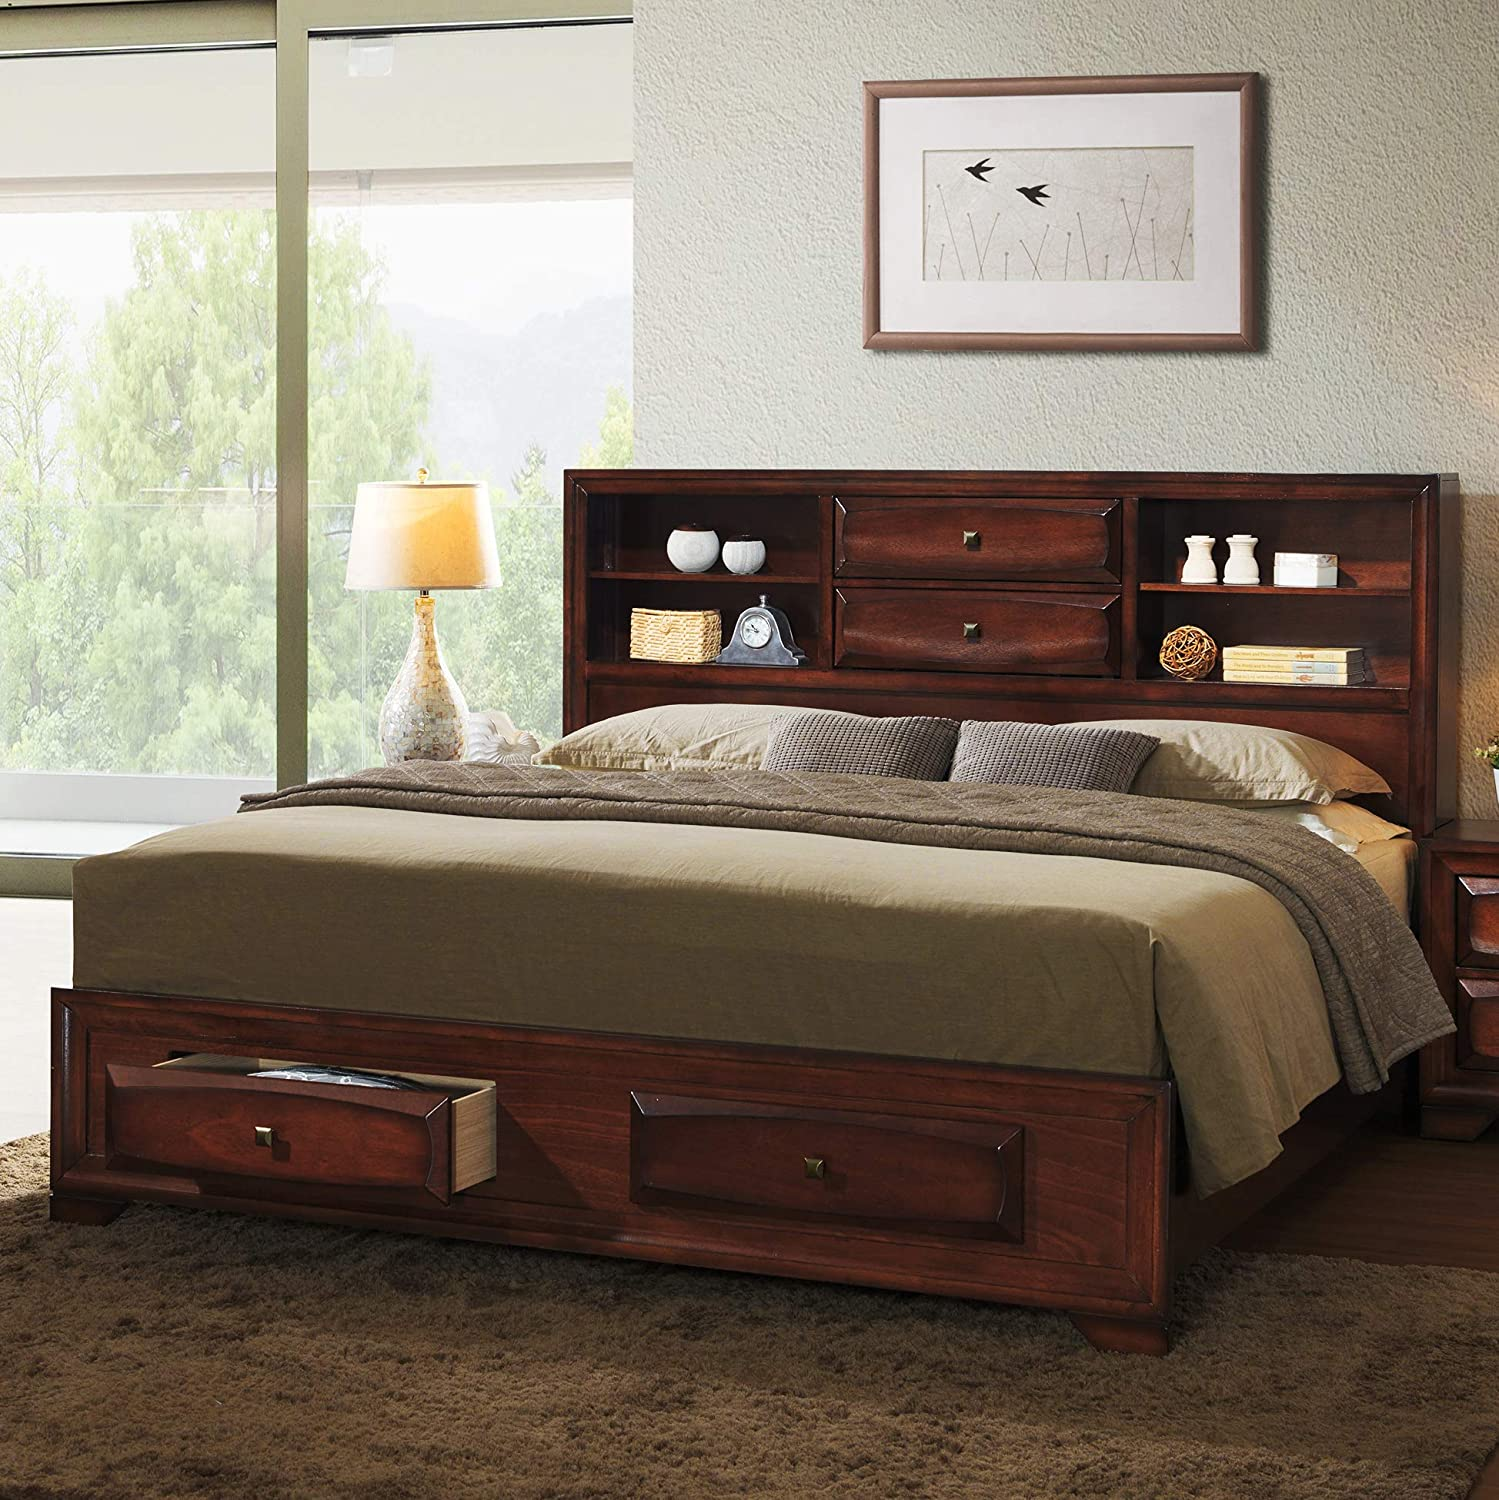 Espresso Roundhill Furniture Myory Contemporary Wood Upholstered Panel King Bed 4-Piece Set